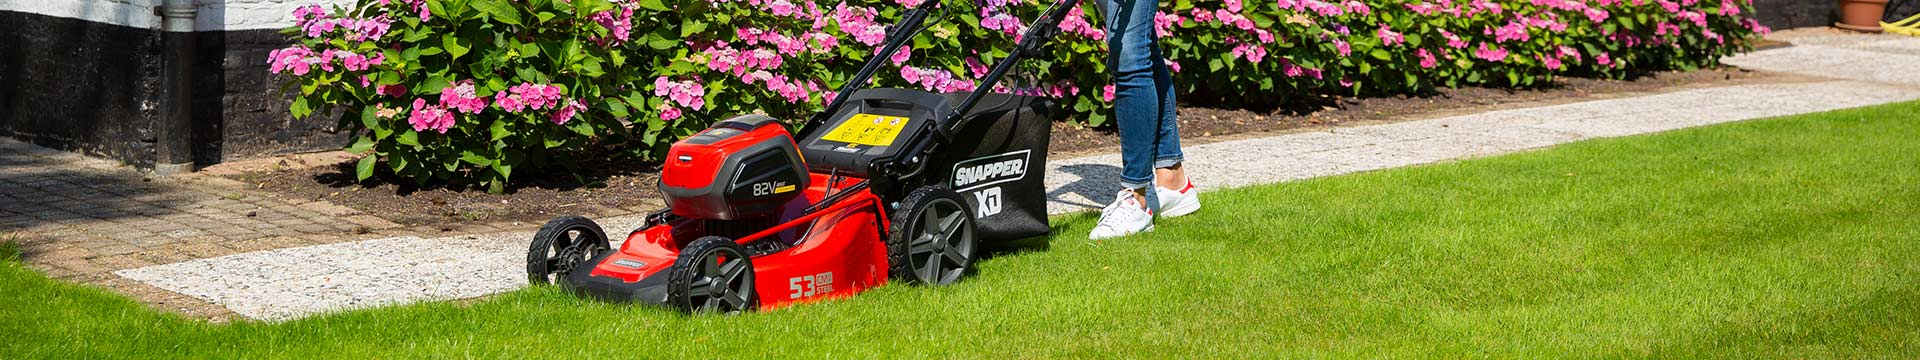 Snapper Cordless Lawn Mowers